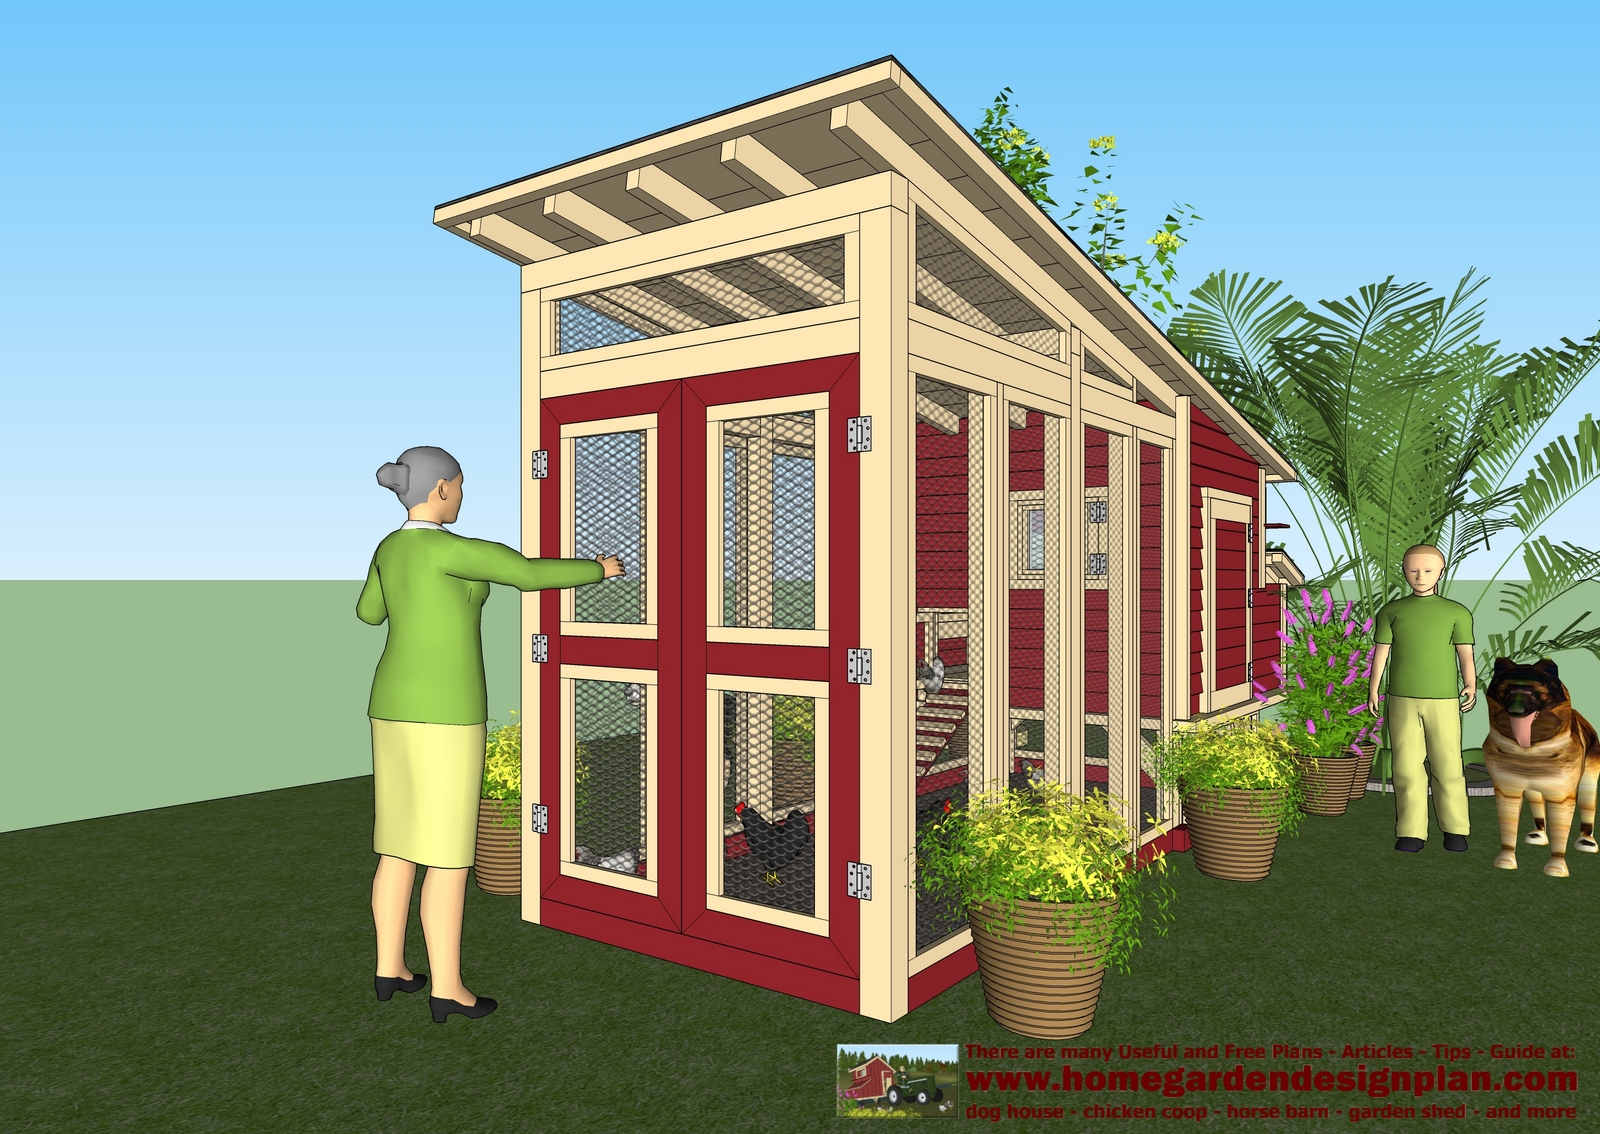 Coop qu chicken coop for Free coop plans